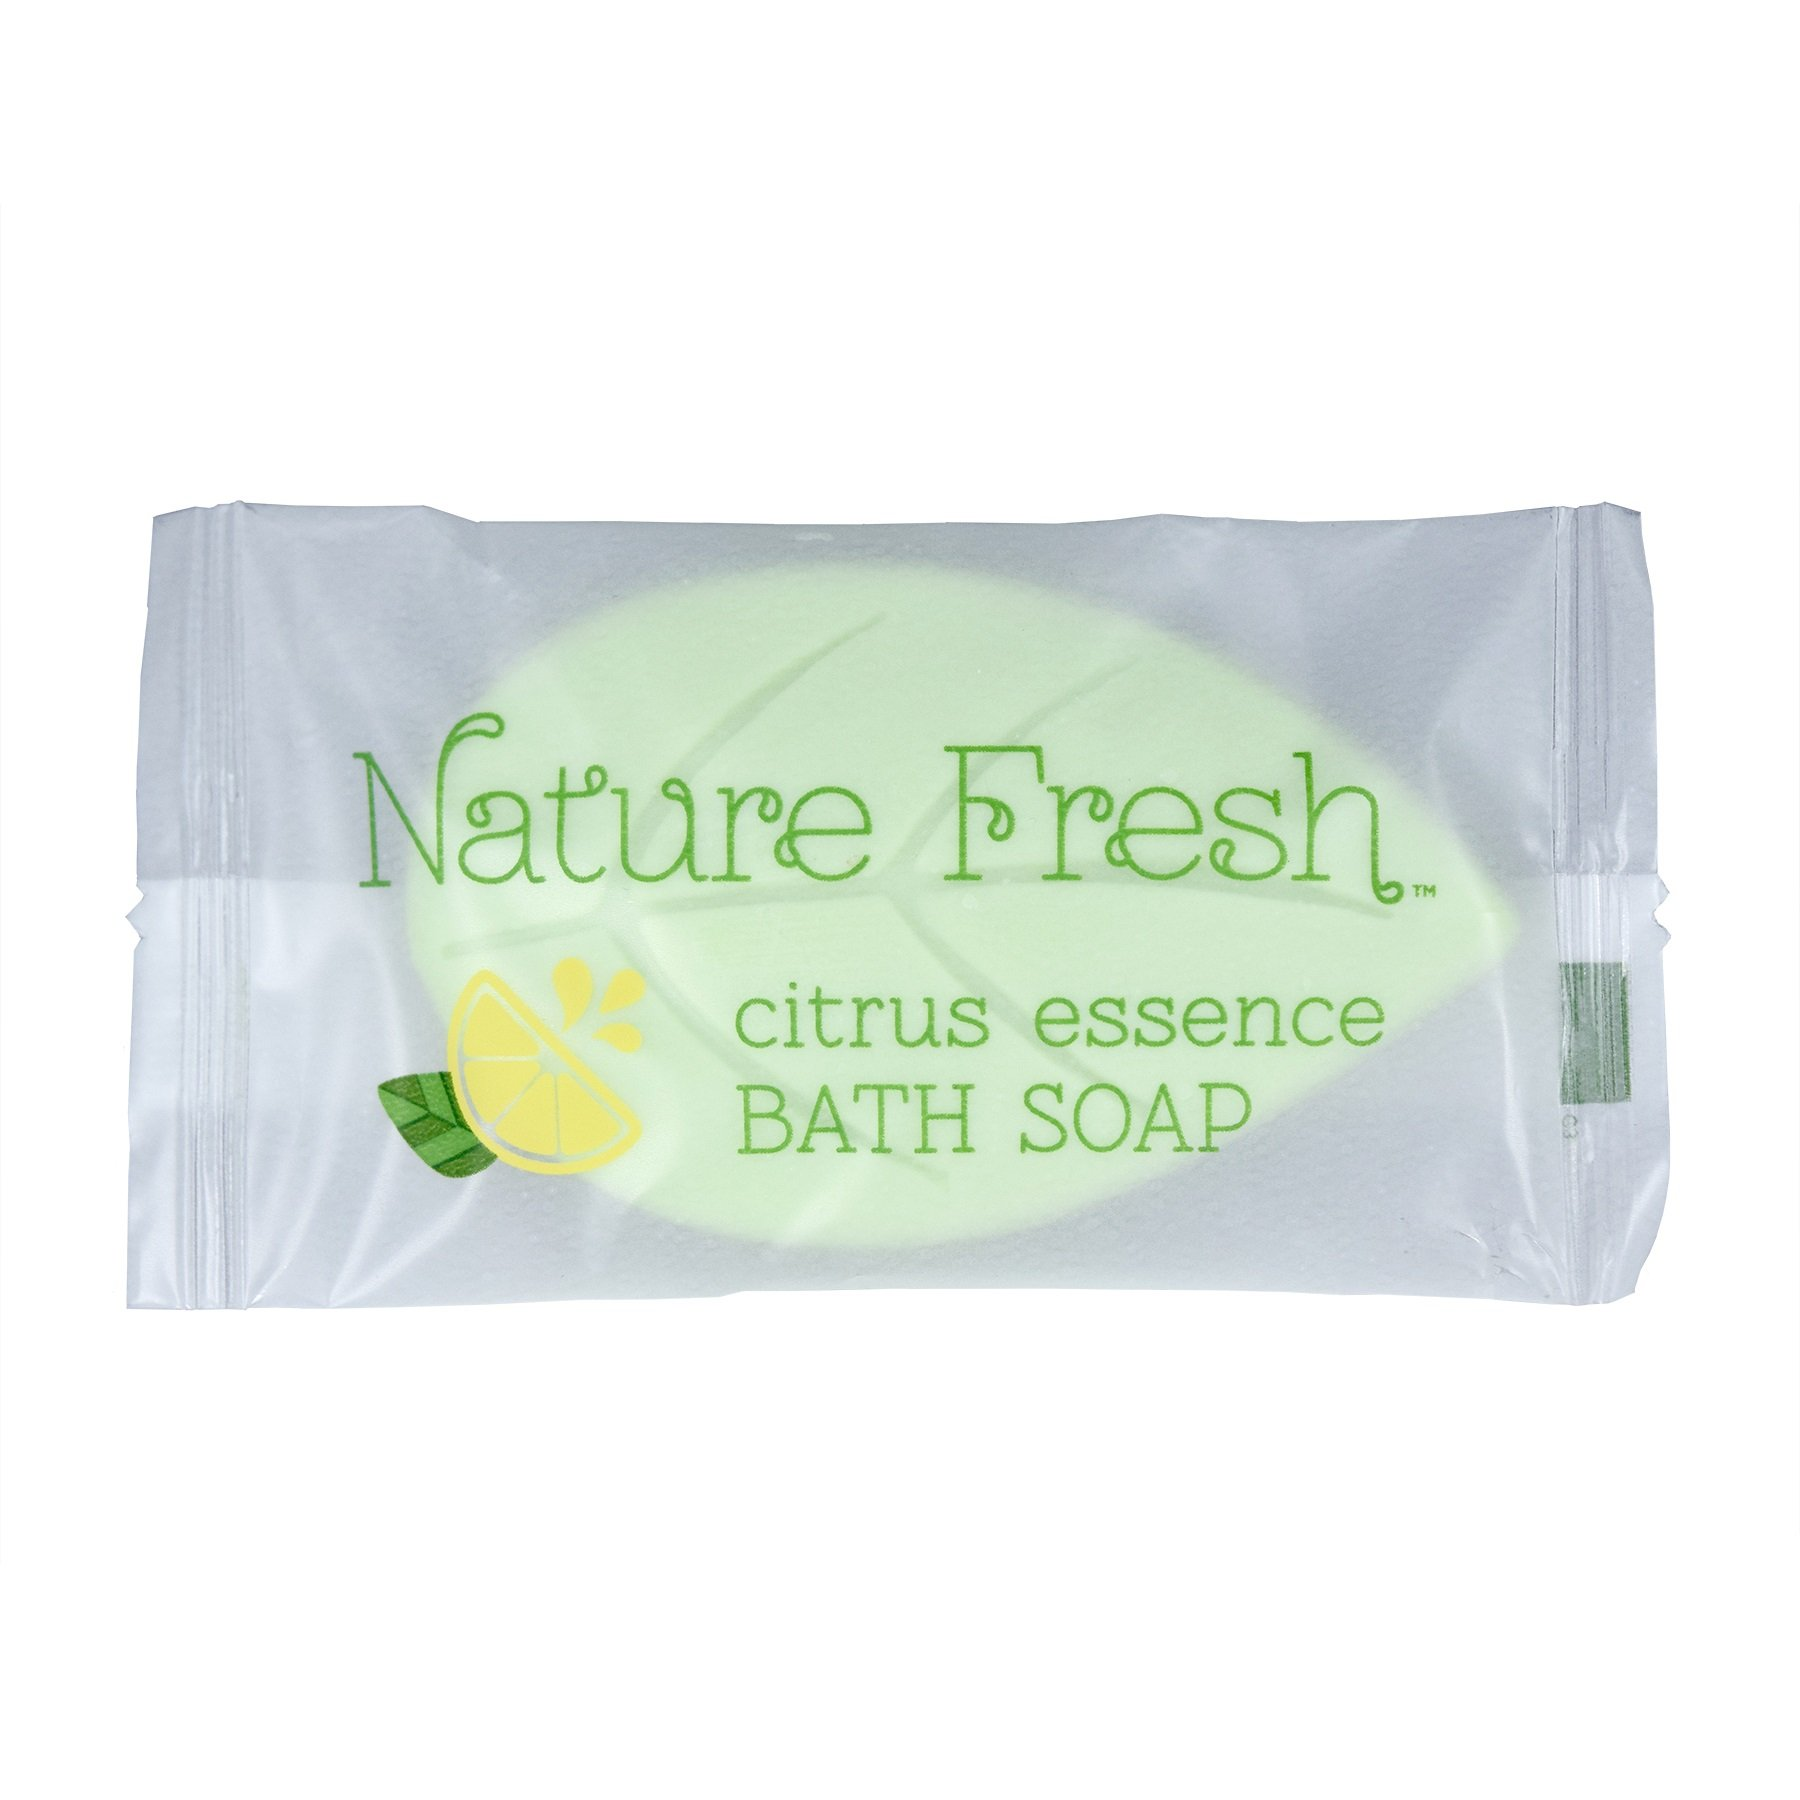 Nature Fresh Bath Soap Bars 1 Ounce, Case of 500